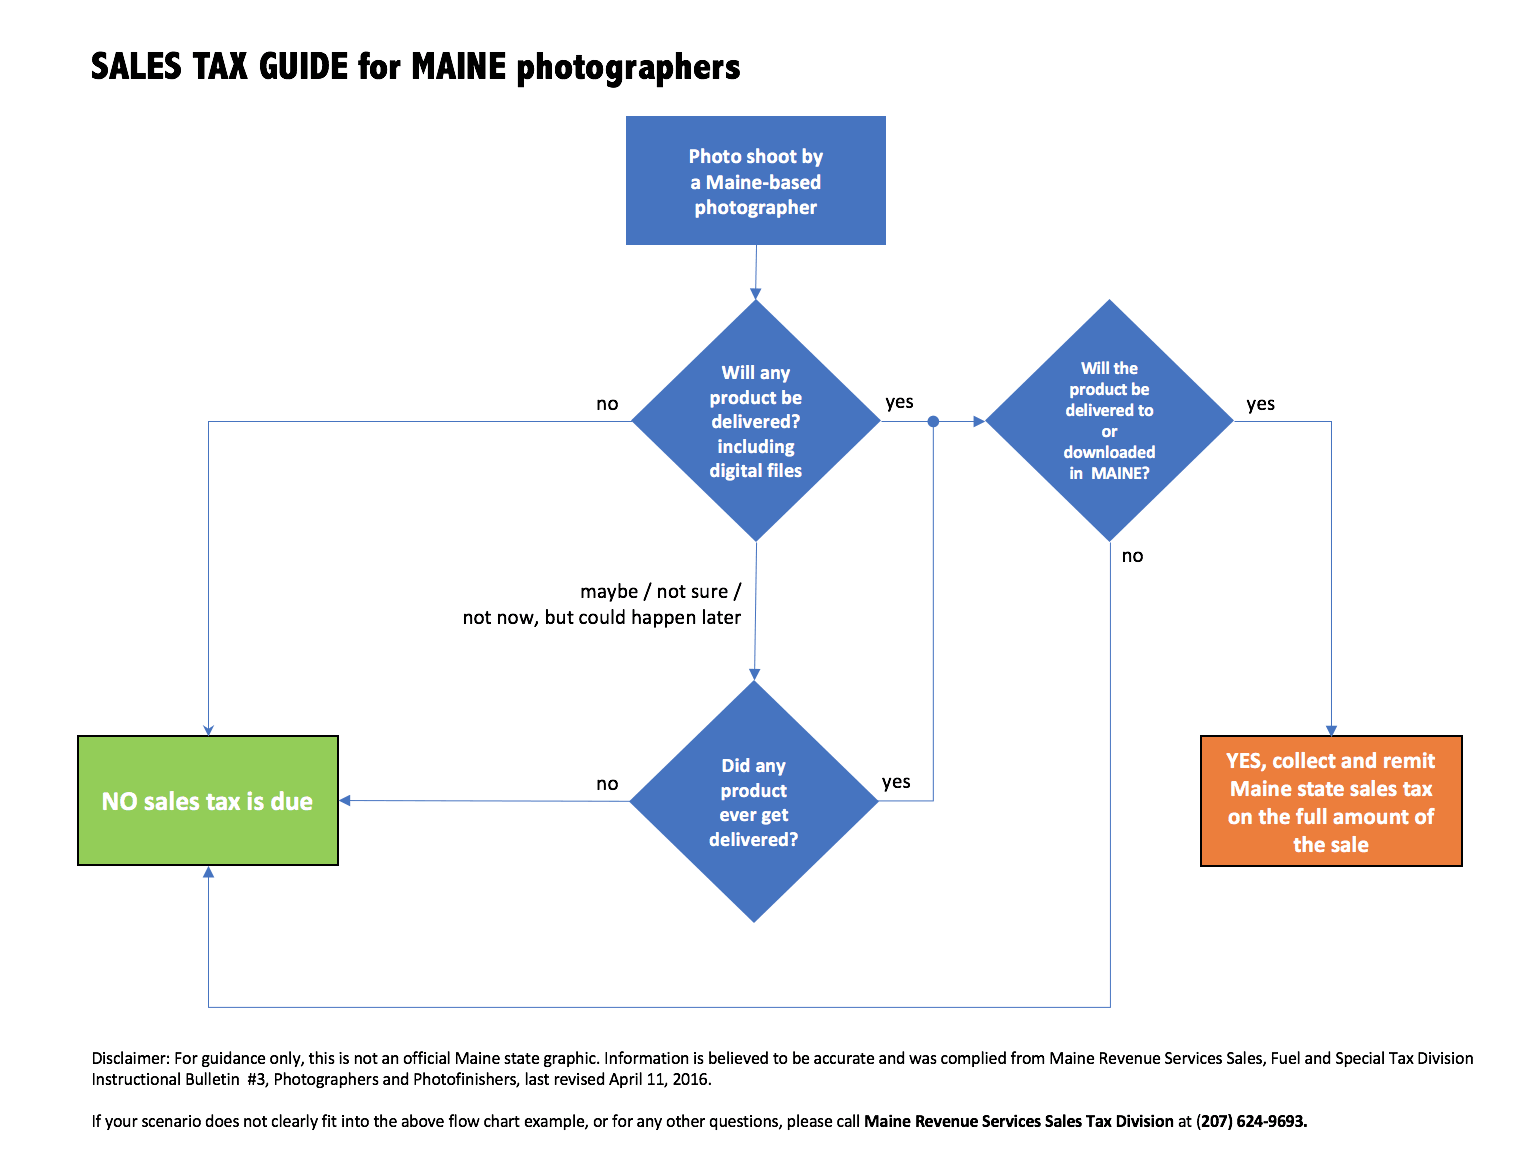 Maine photographer Maine state sales tax collection flow chart